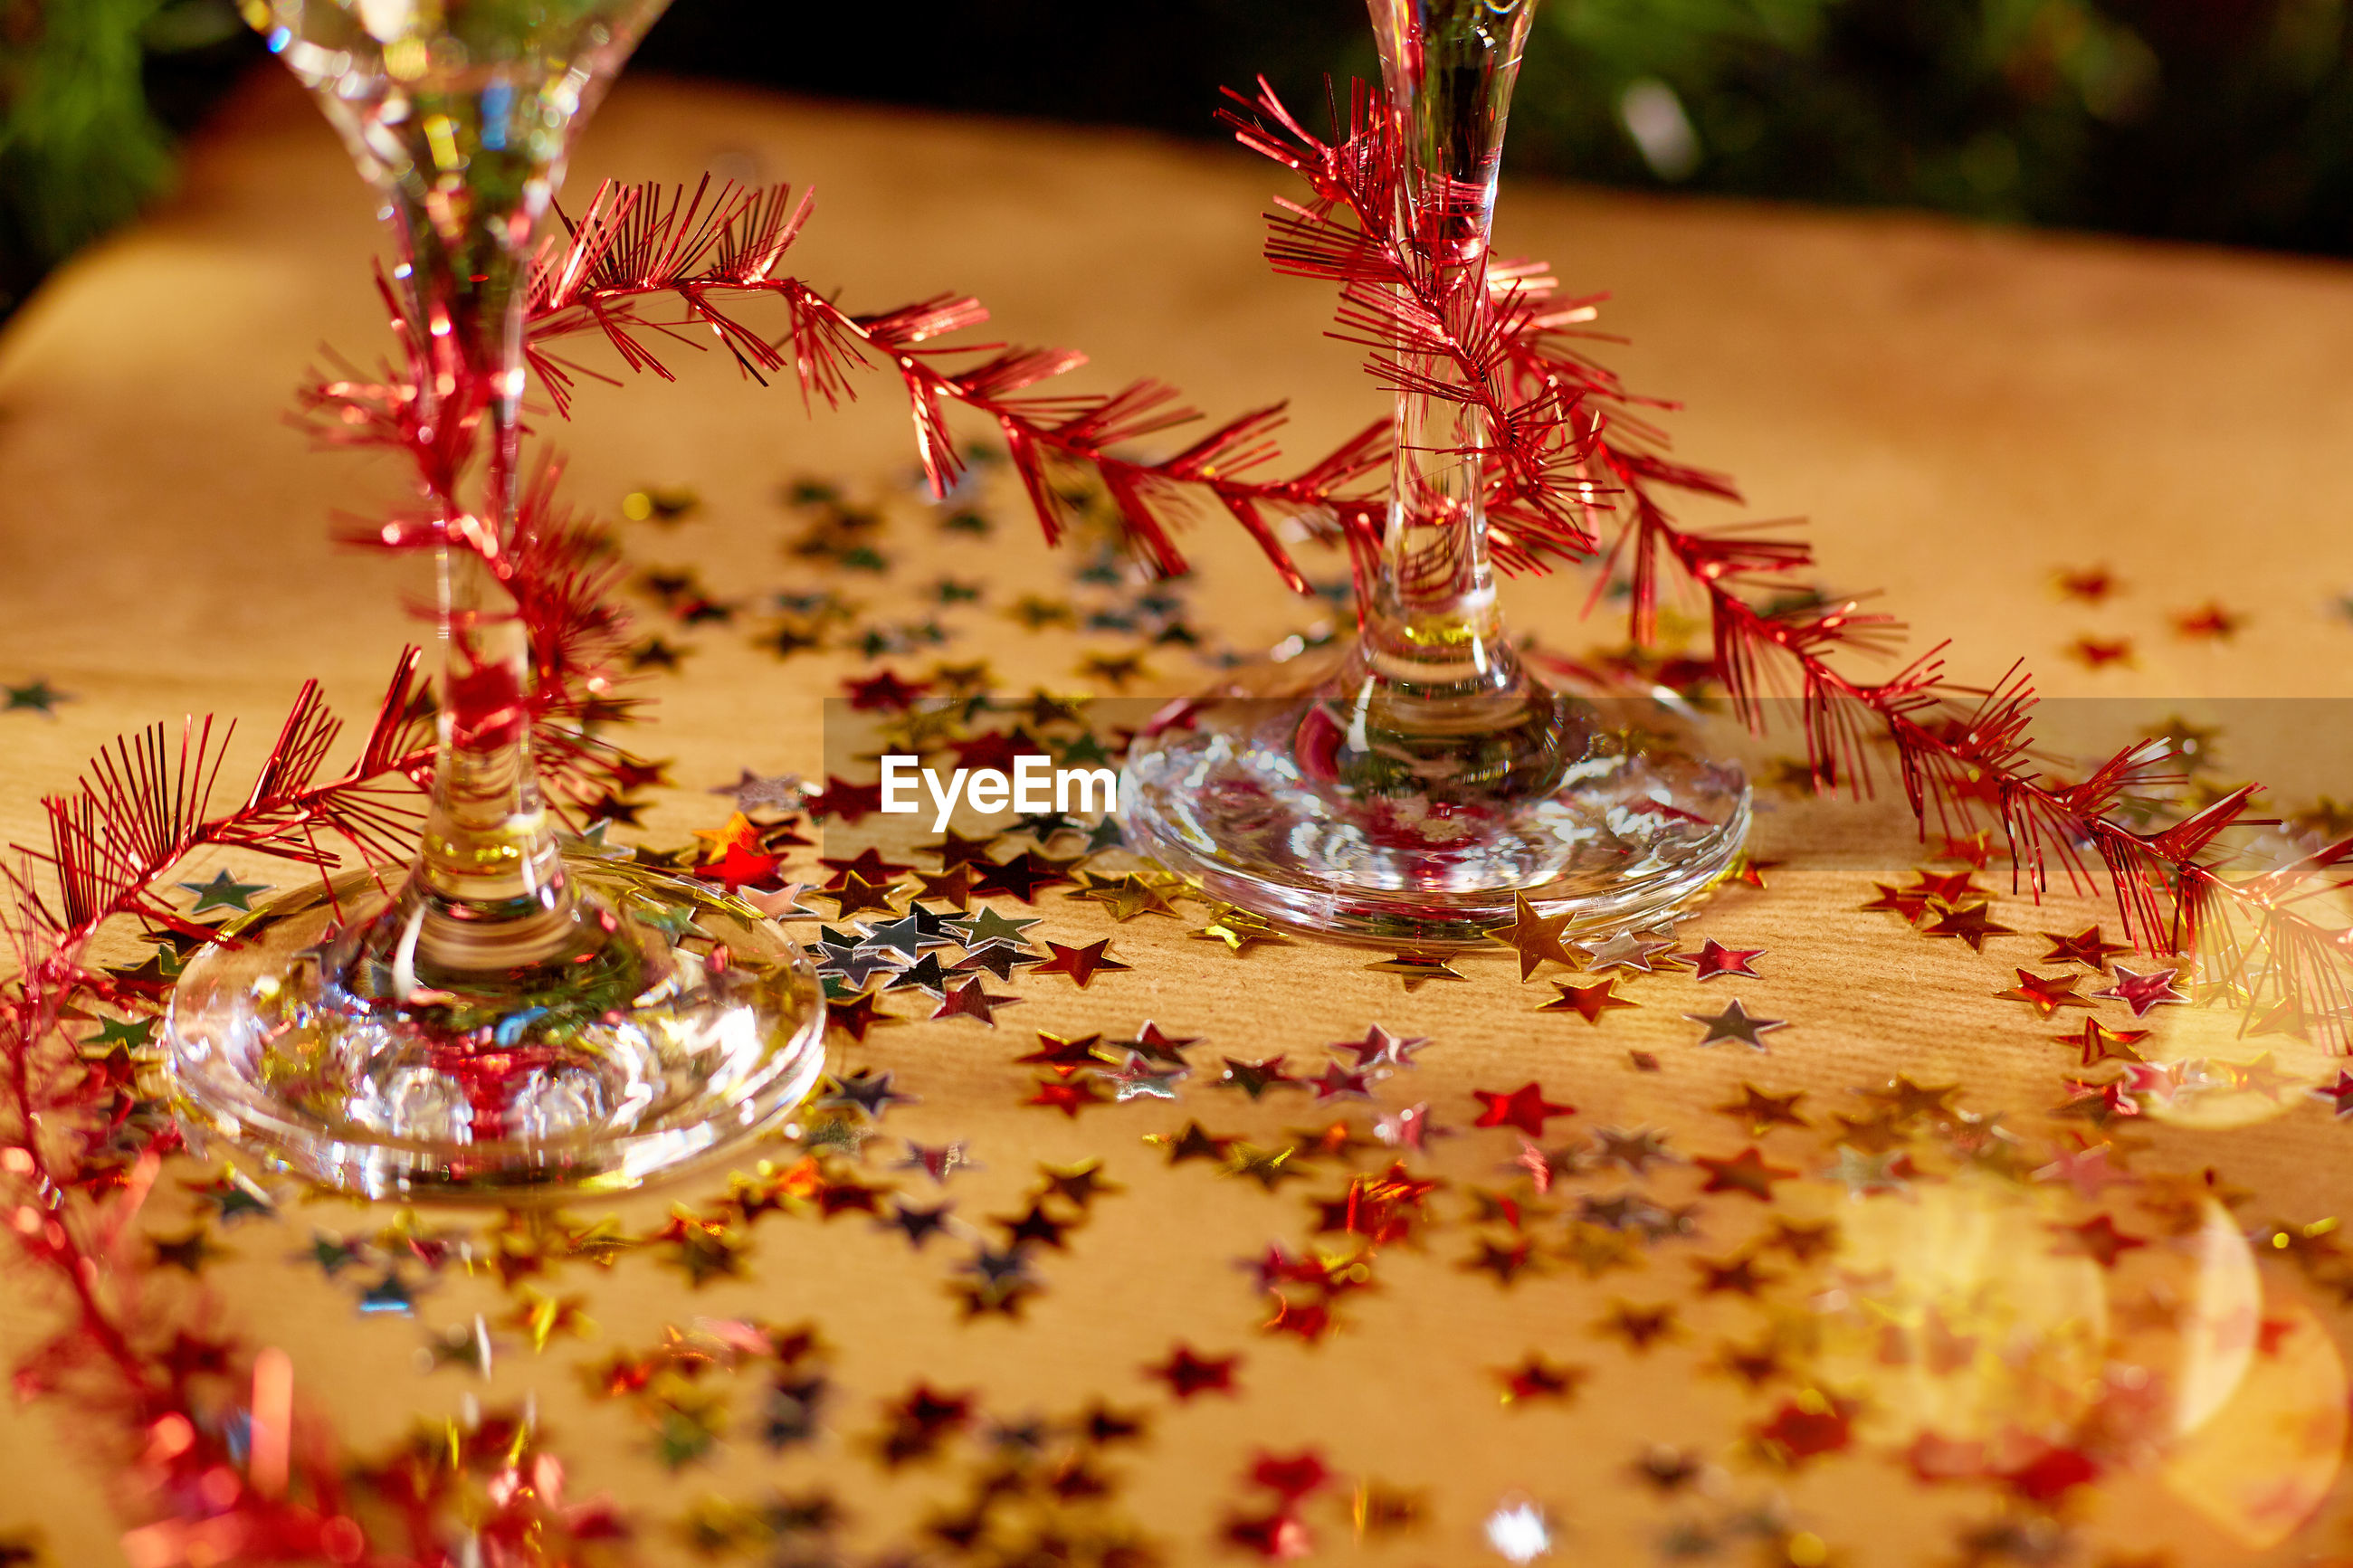 CLOSE-UP OF CHRISTMAS ORNAMENT ON TABLE